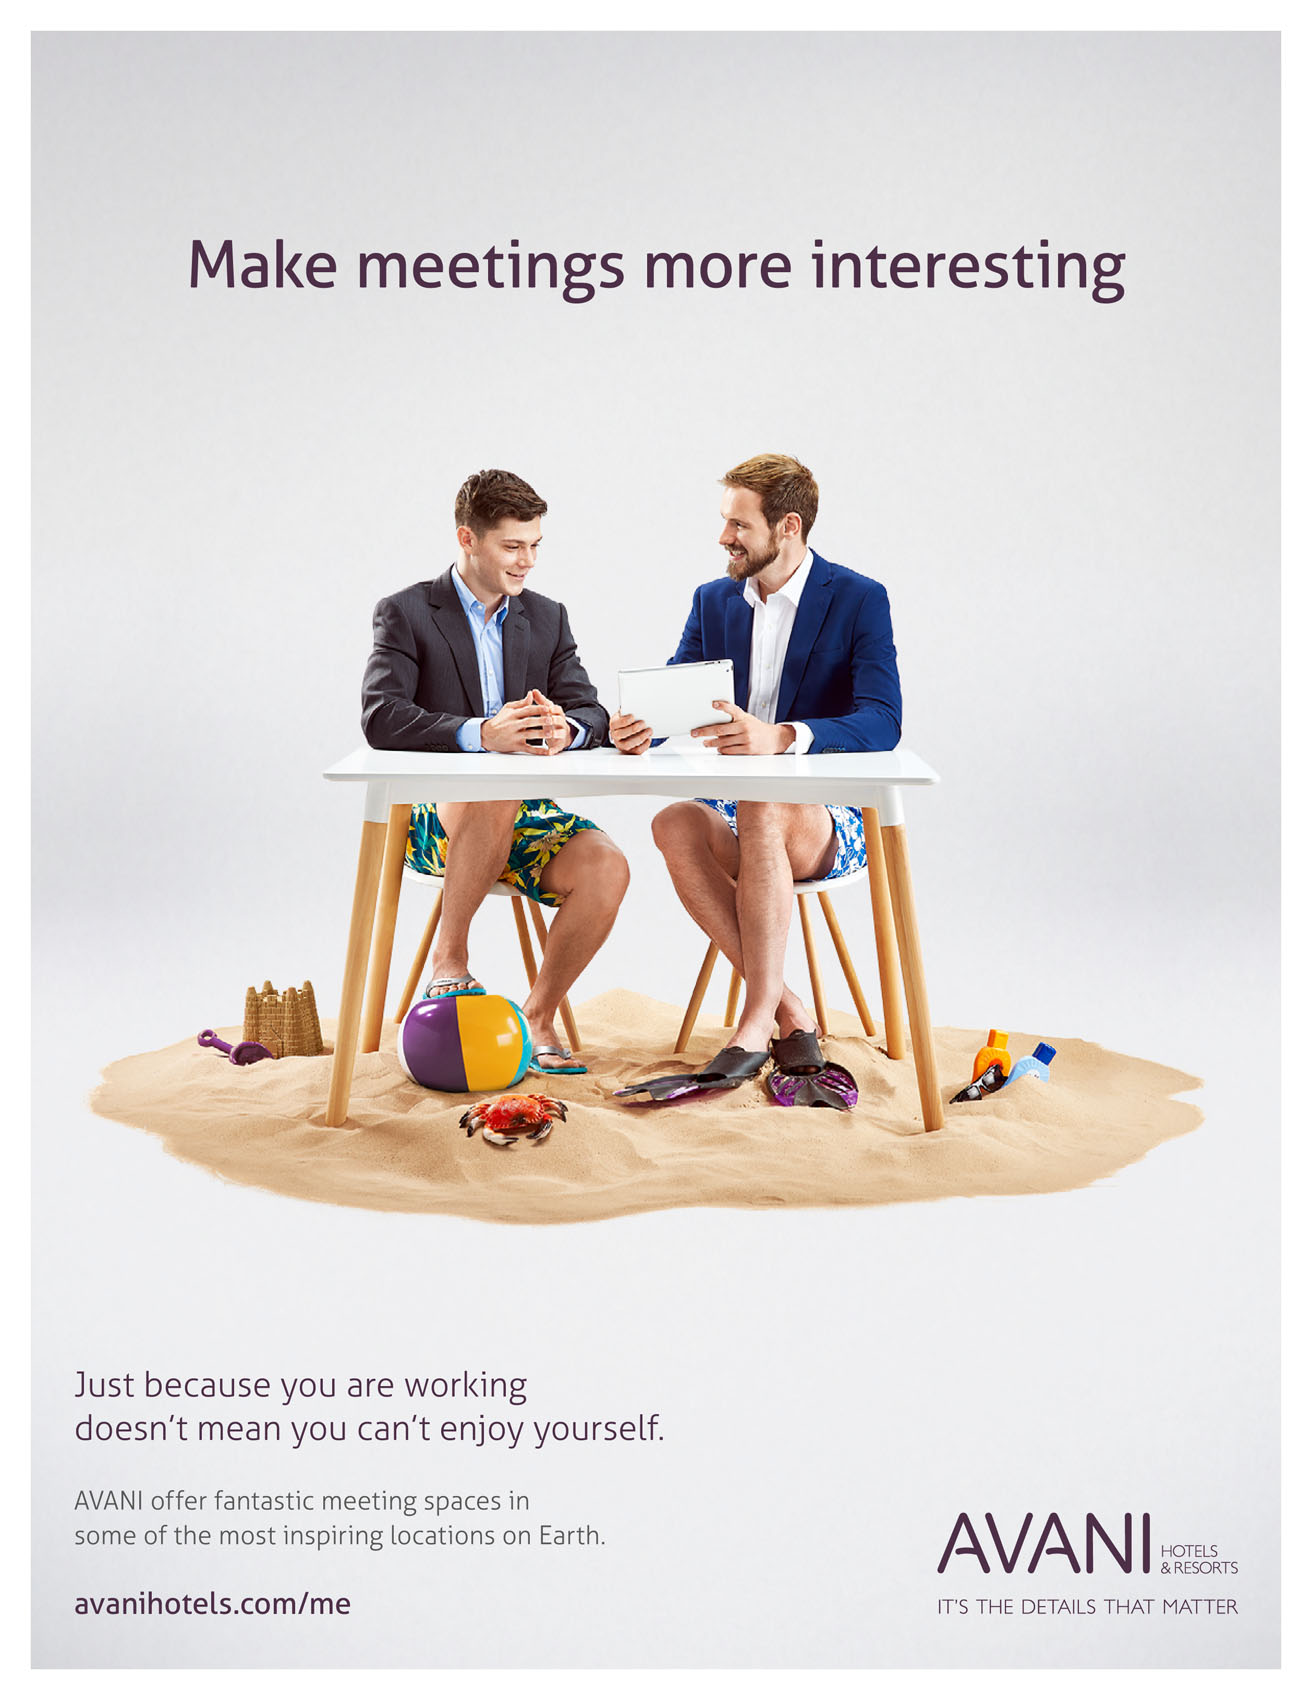 Make meetings more interesting